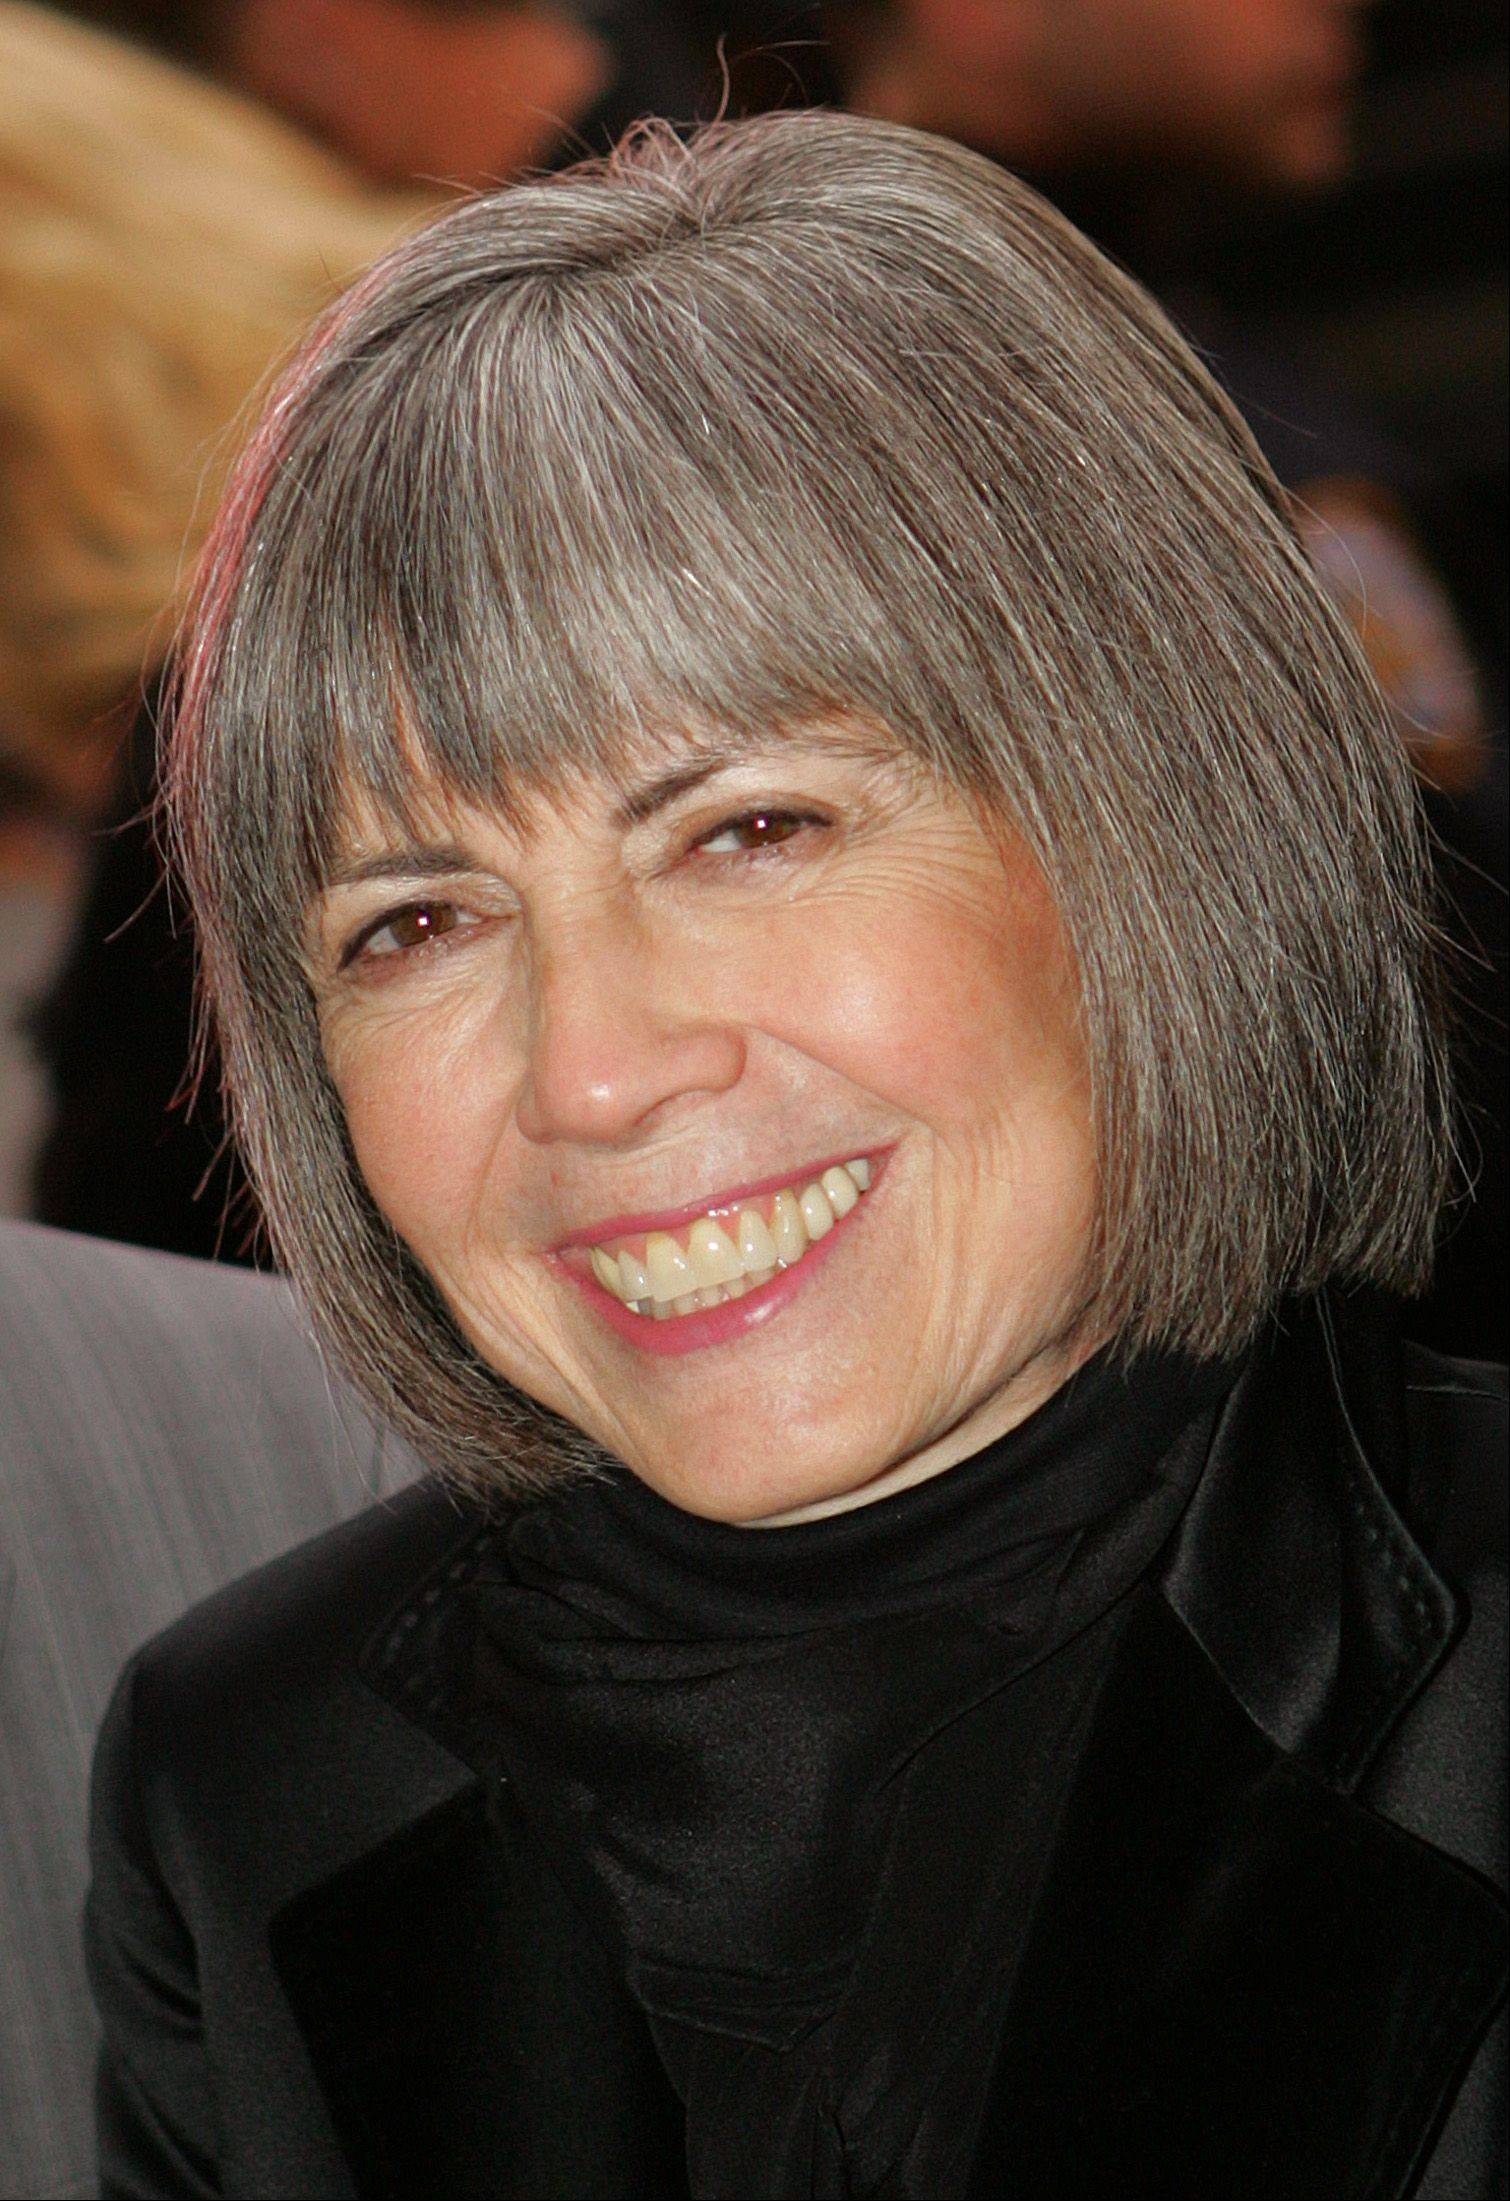 Novelist Anne Rice will appear at the Chicago Comic & Entertainment Expo (C2E2) at McCormick Place in Chicago.